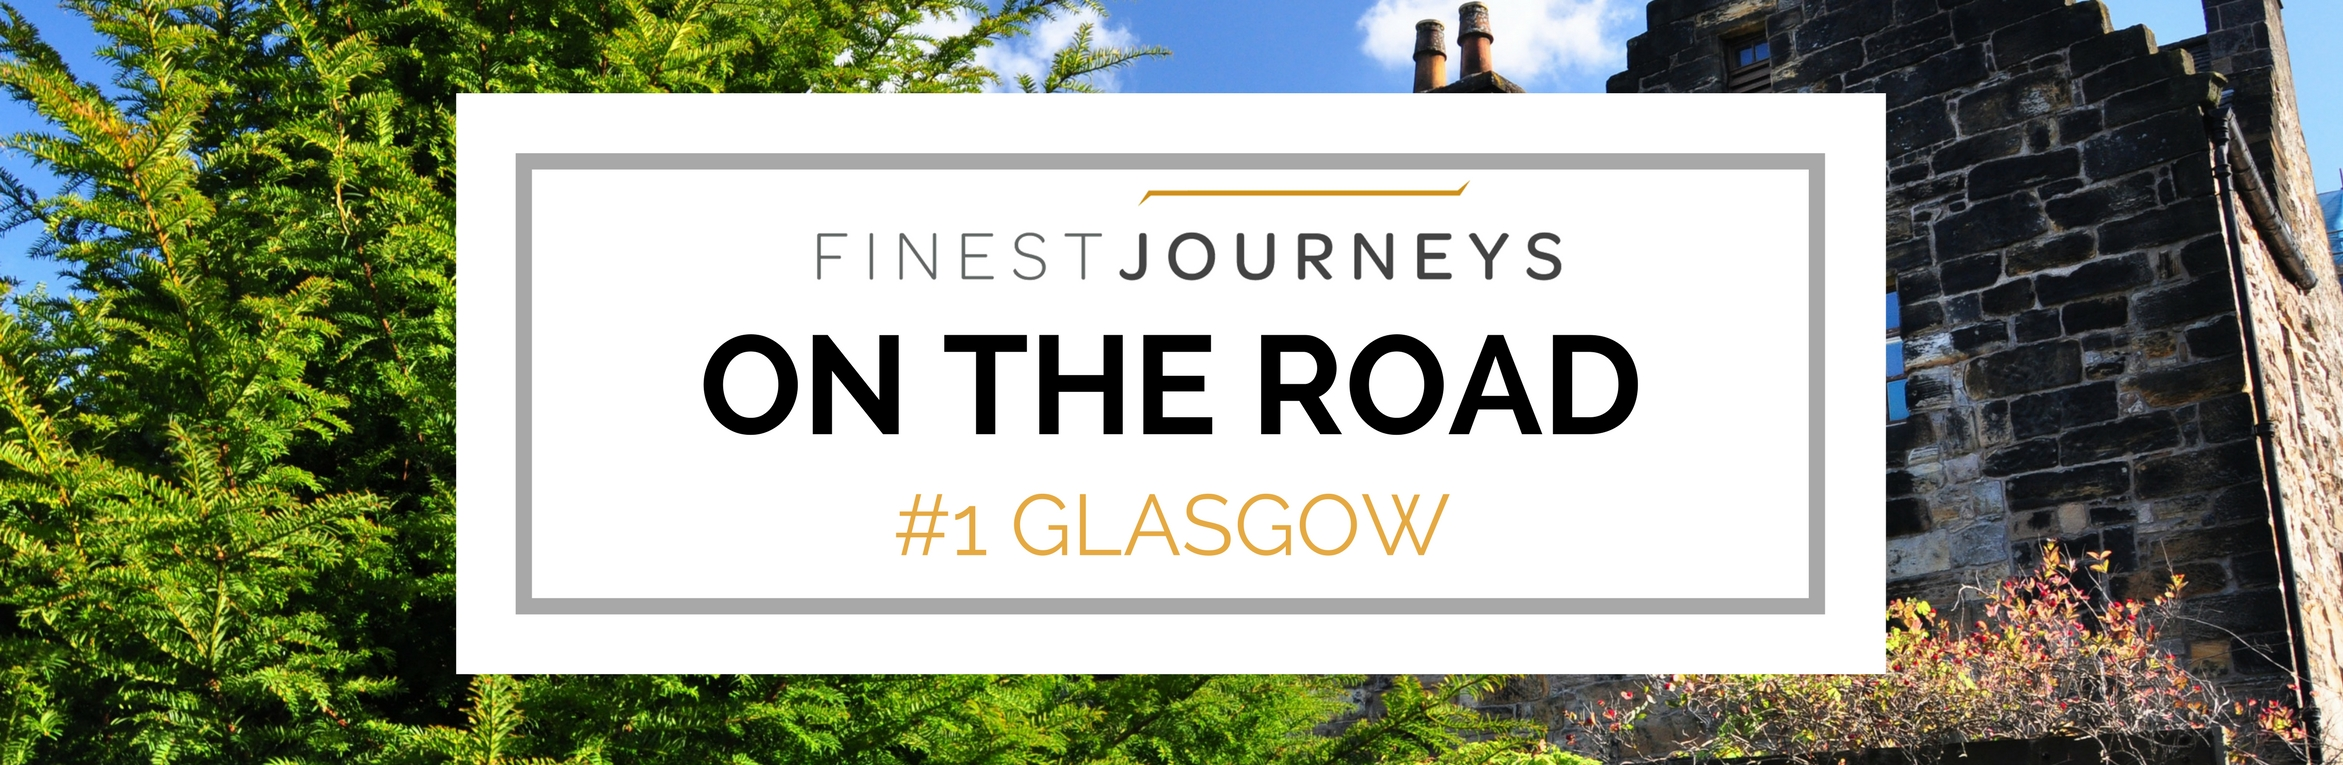 IMG : Finest Journeys ON THE ROAD: Glasgow, Scotland